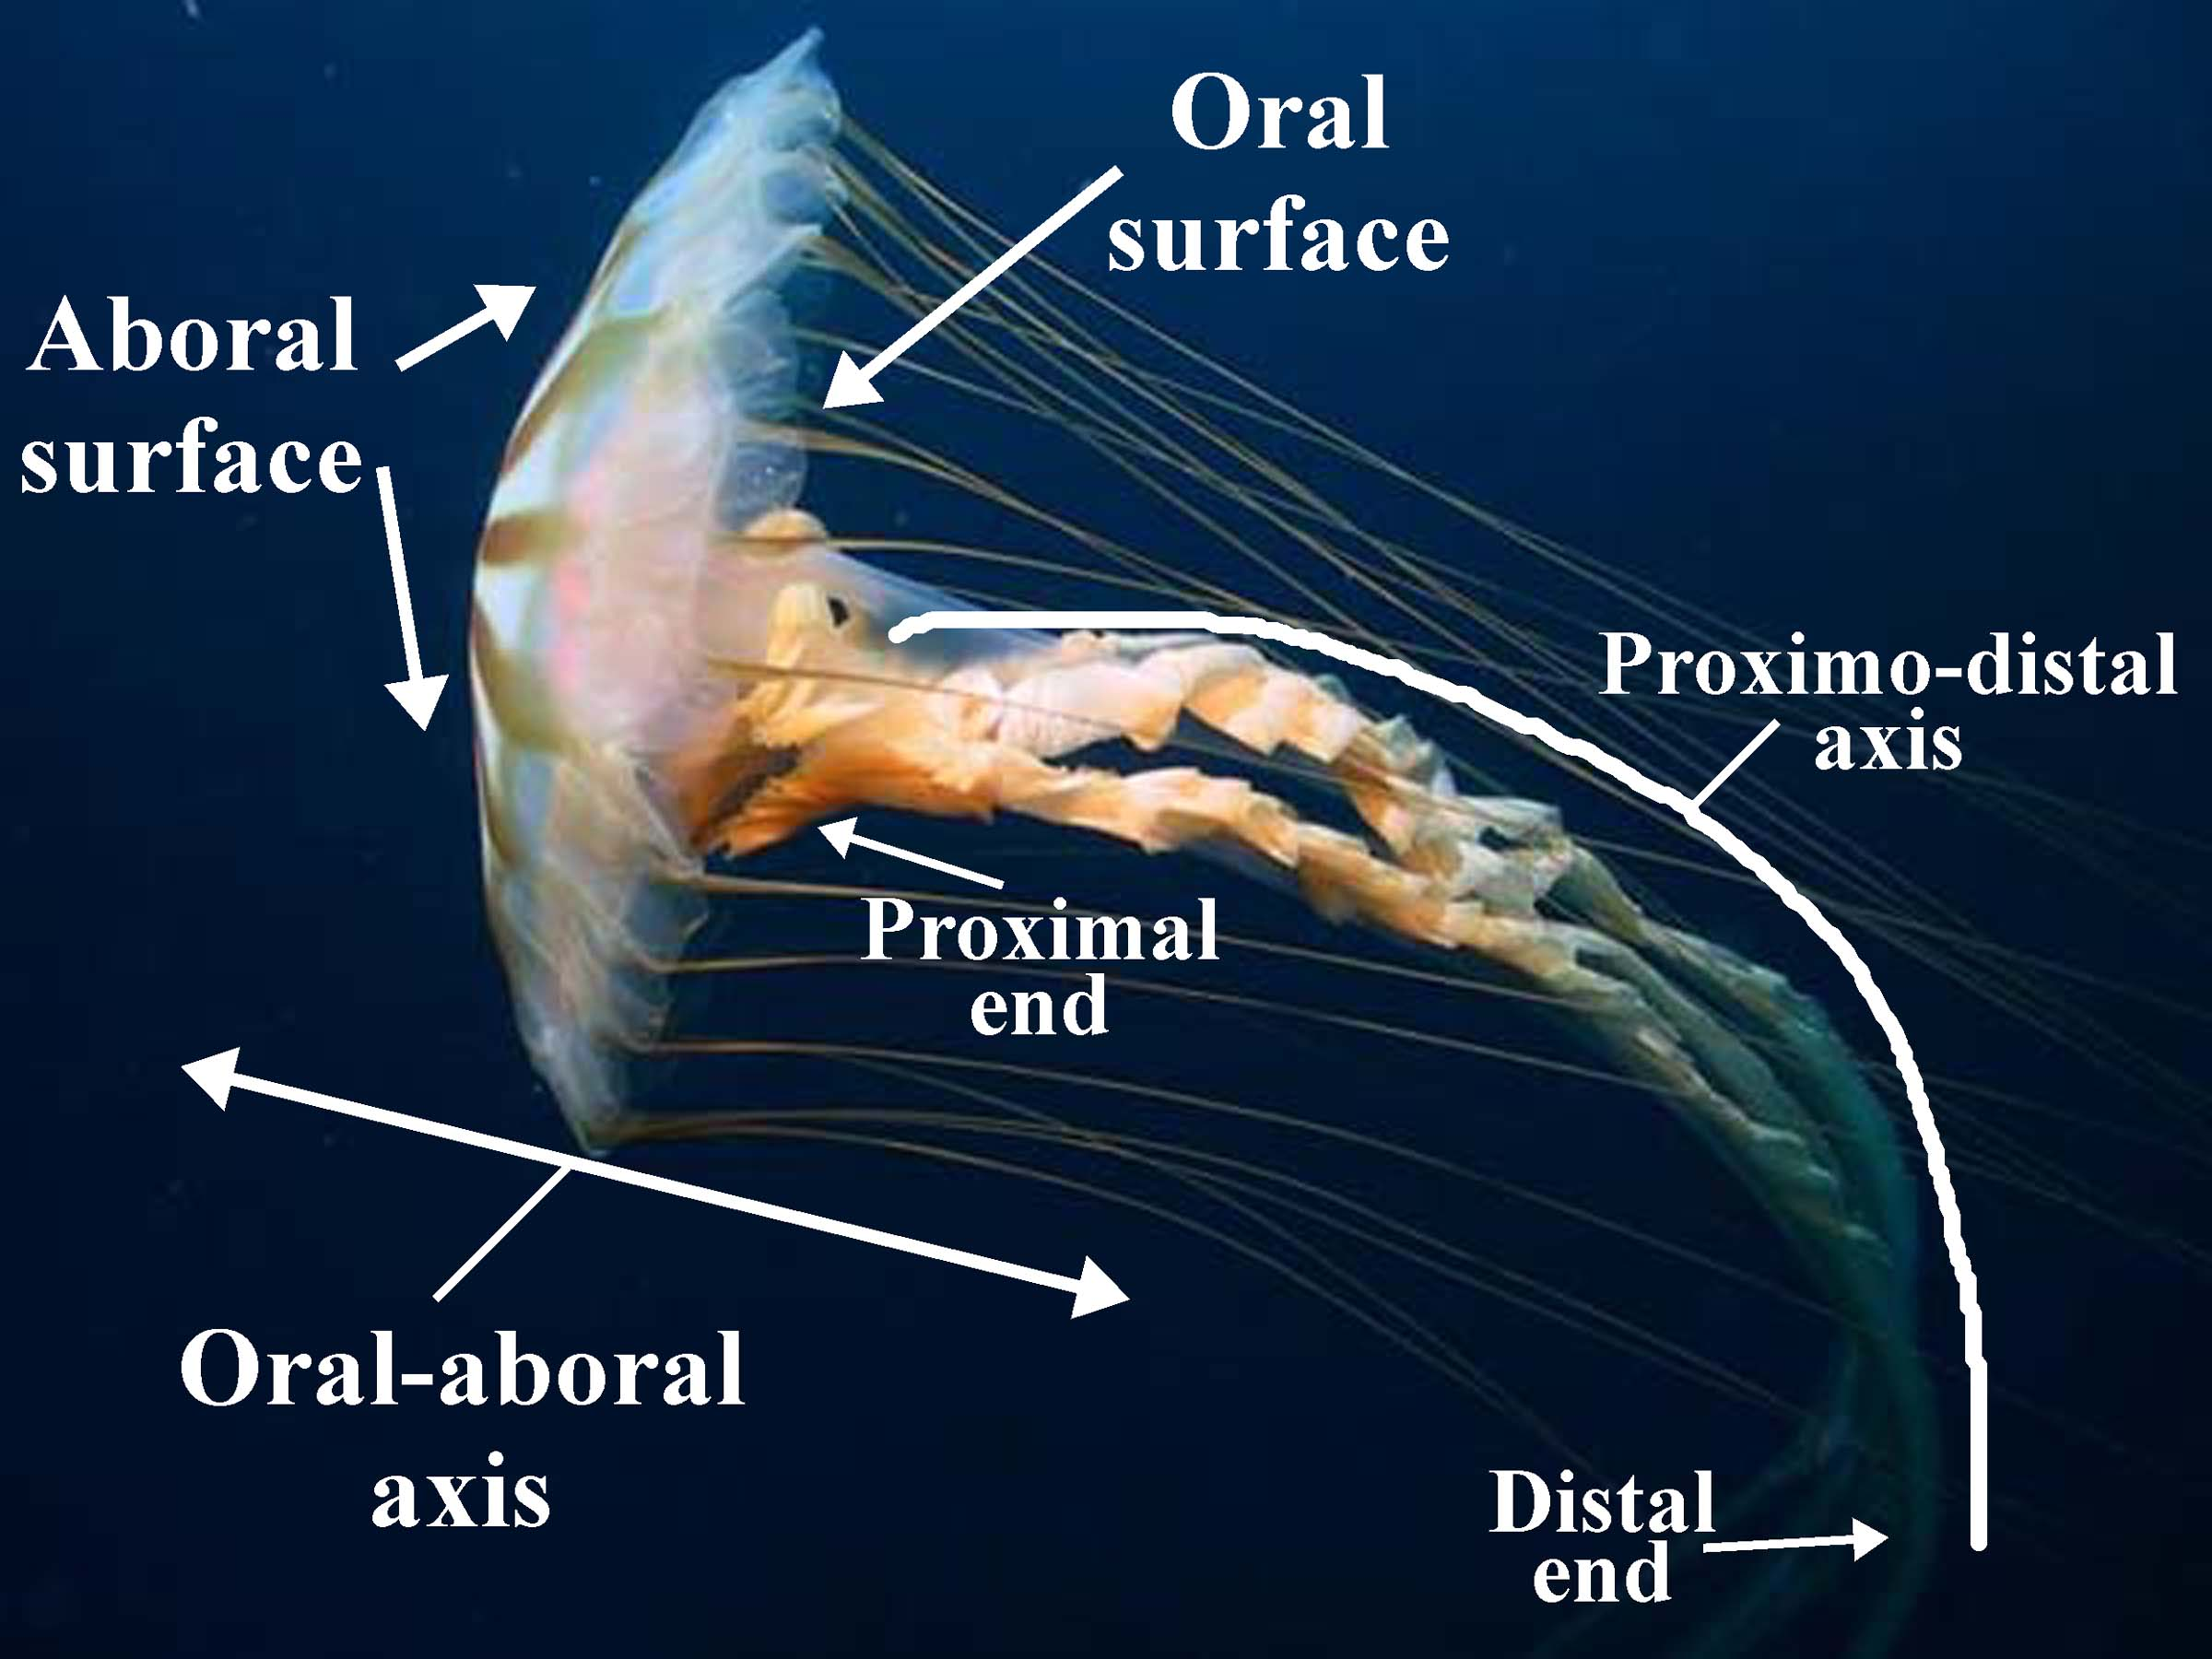 Figure 9: Chrysoara spp. (a jellyfish), showing the oral-aboral, and proximodistal axes. (Note that the appendages are not in standard anatomical position, so that the axis is curved.)